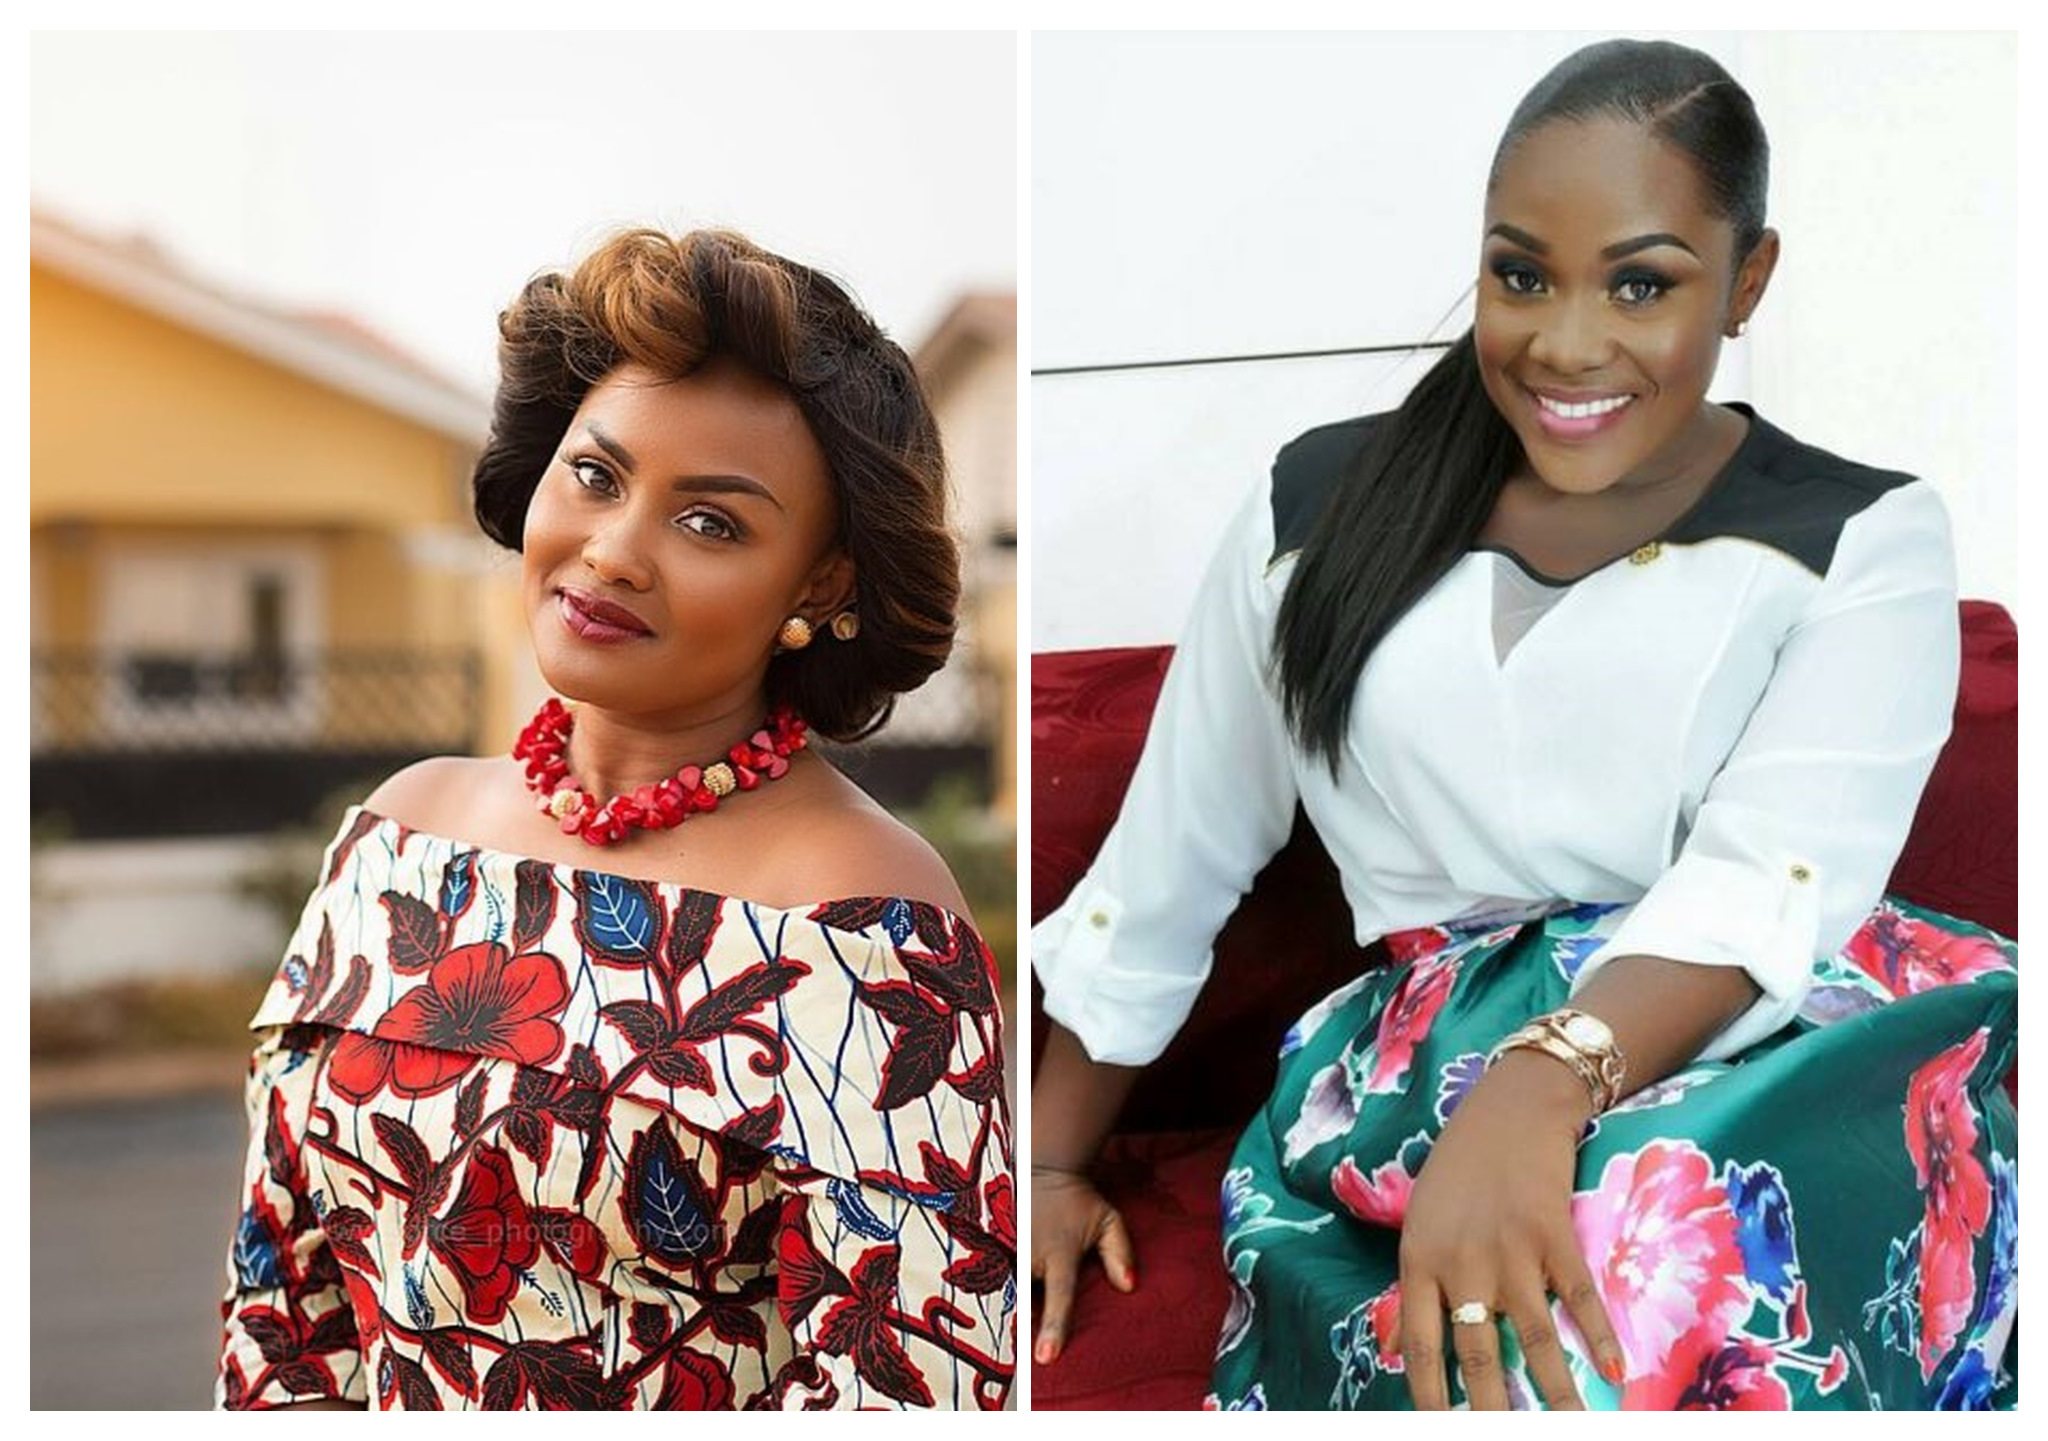 Must Read: See What Nana Aba Mcbrown And Emelia Brobbey Did That Everyone On Social Media Is Talking About